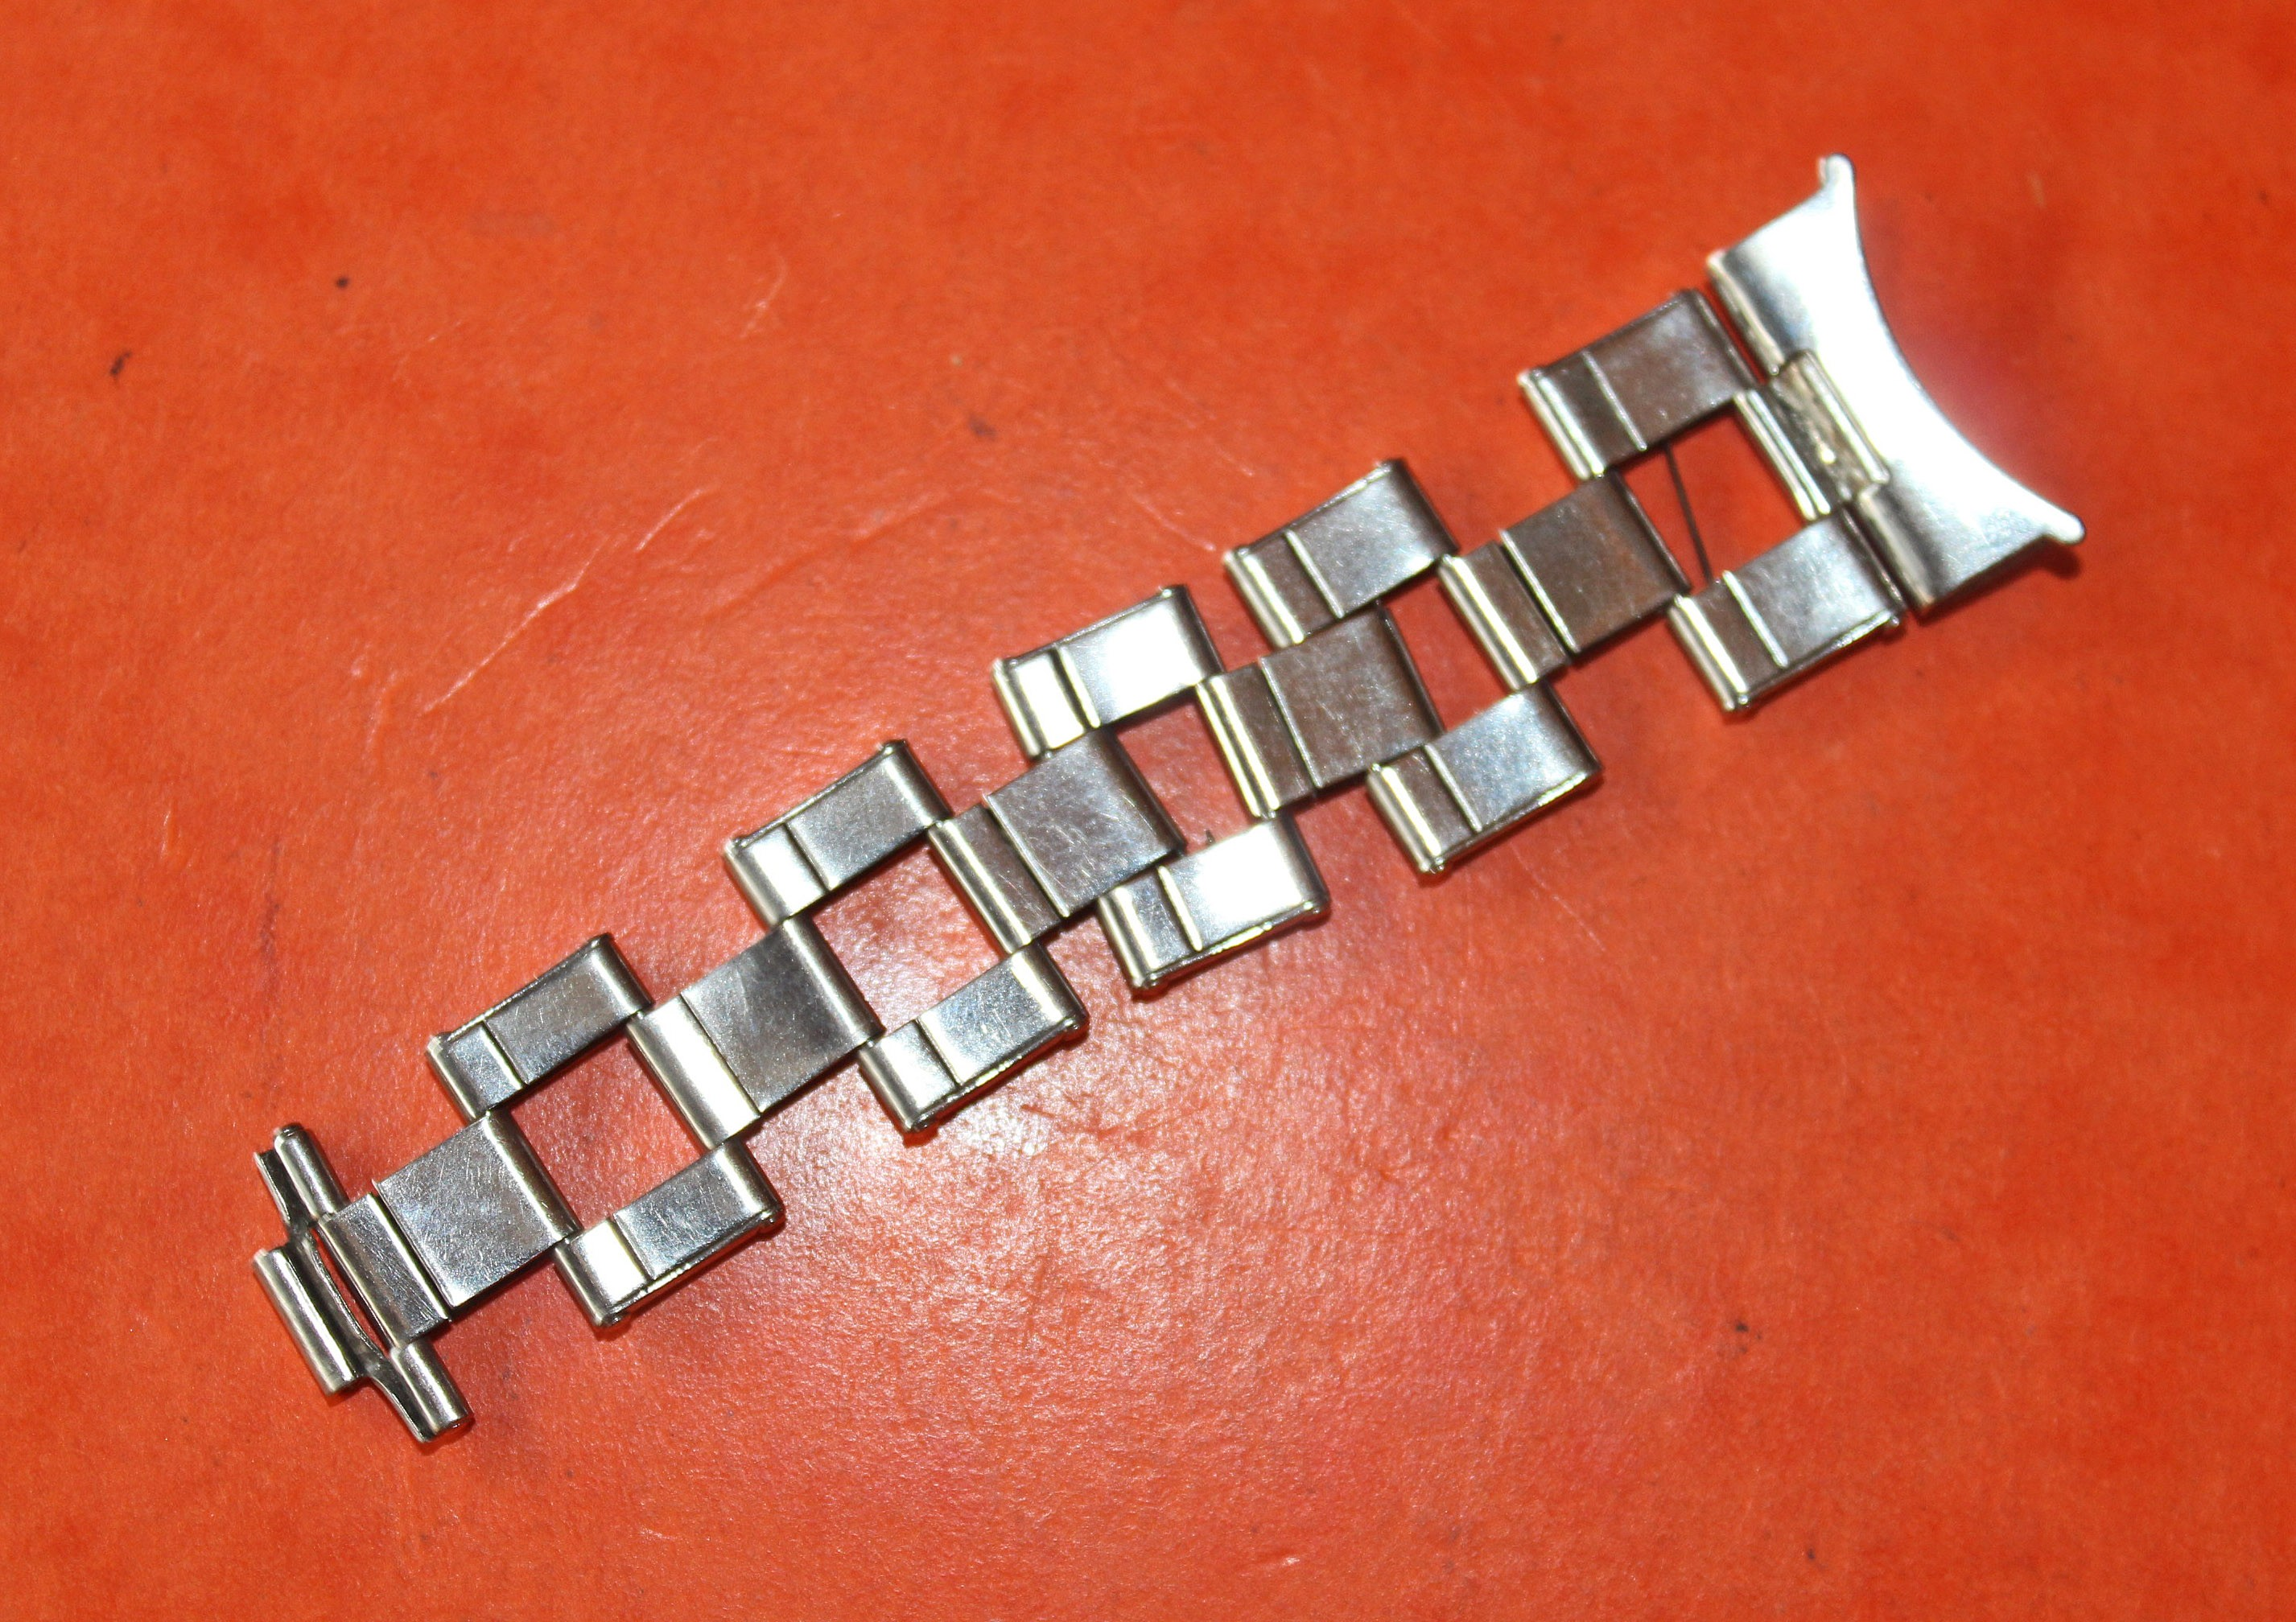 1 x PARTIE BRACELET RIVETS EXTENSIBLE 20mm US SUBMARINER GMT MASTER MAILLONS 5512, 5513, 1680, 1655, 1675, 1019